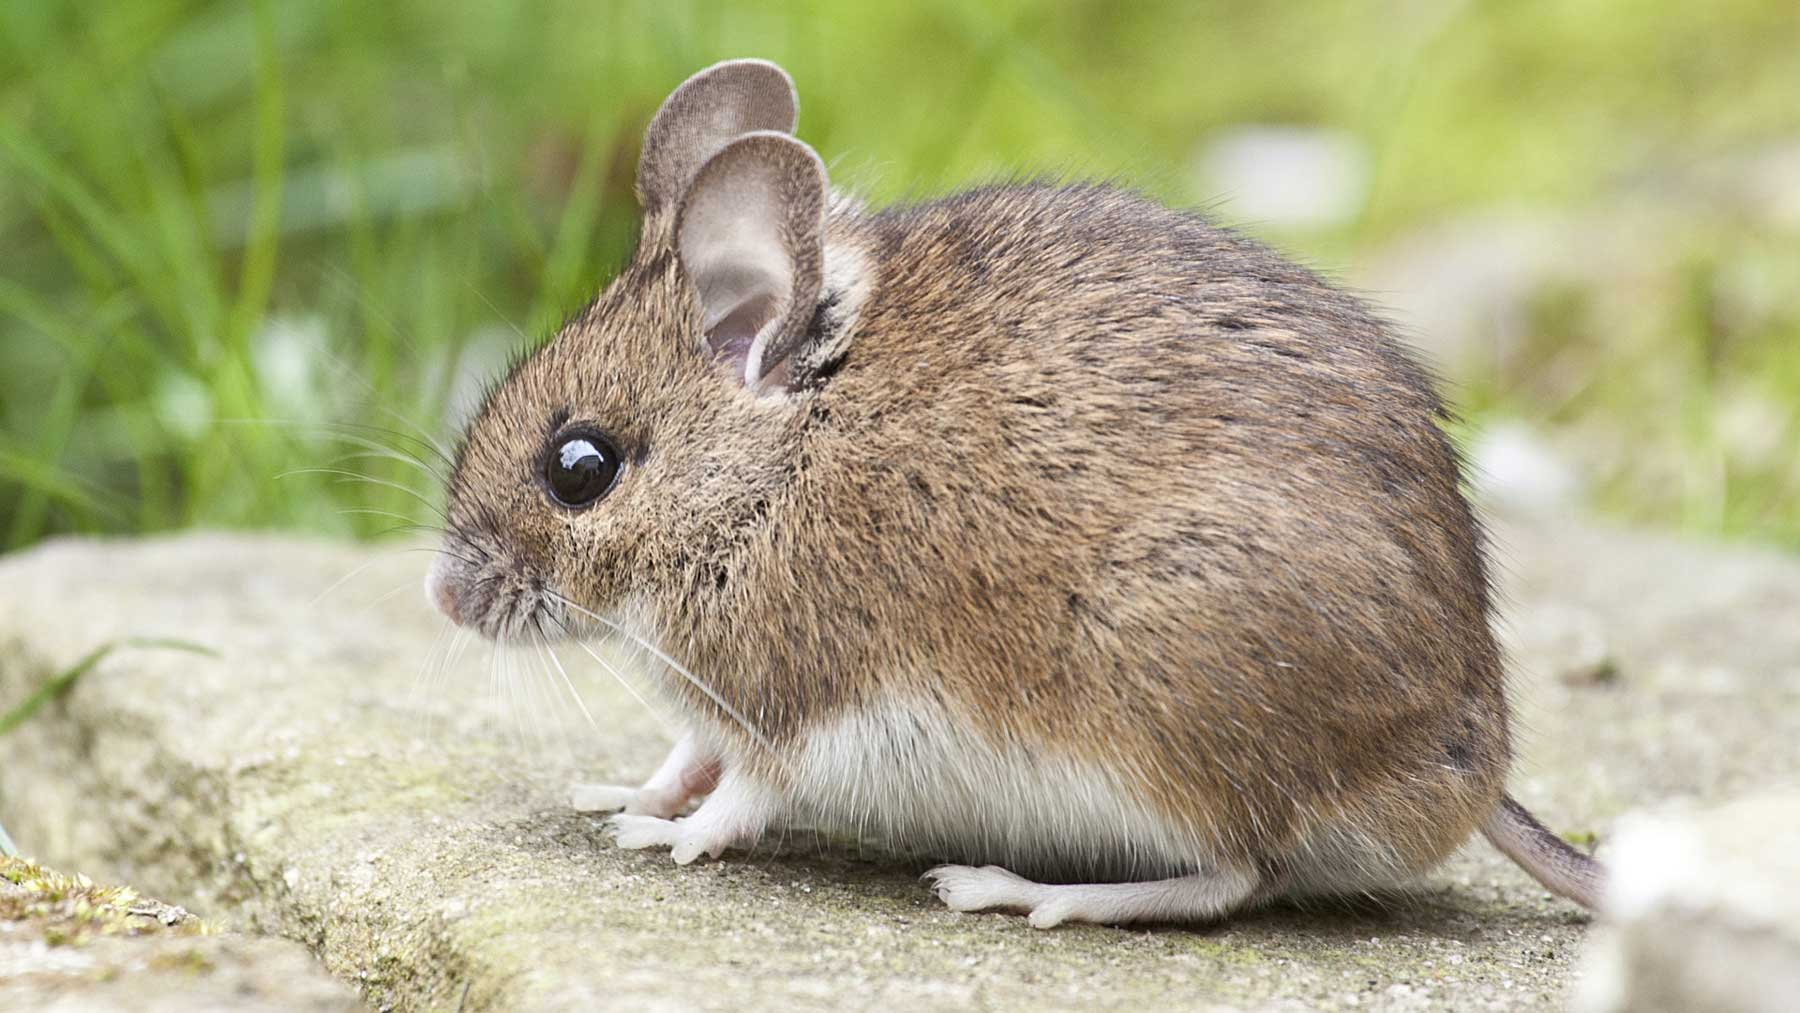 close up of mouse in garden on paving with grass in the background